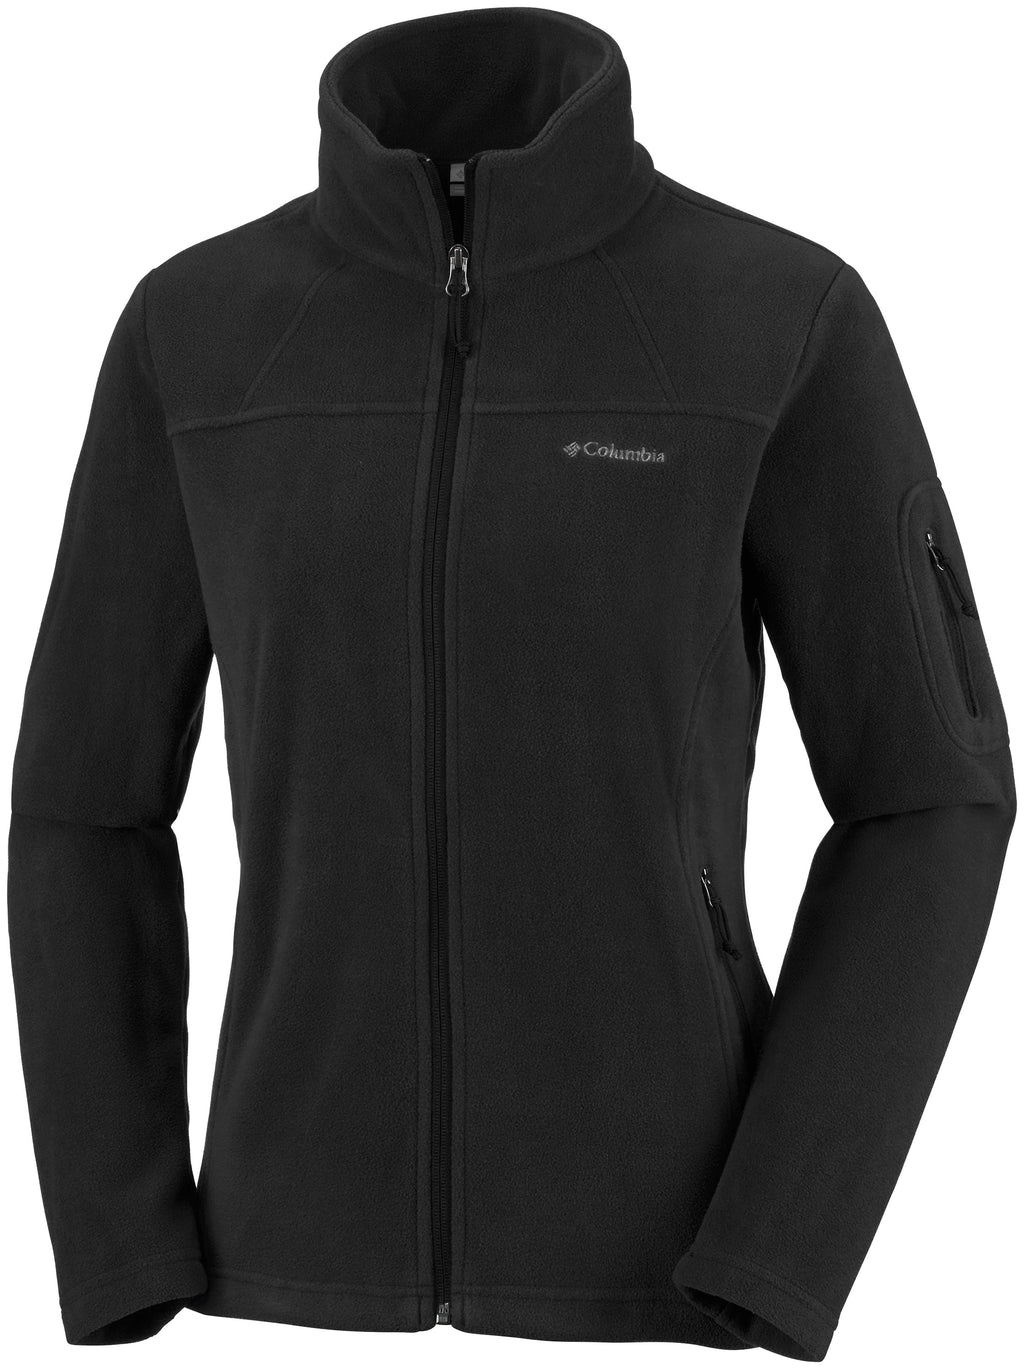 Columbia Women's Fast Trek II promotional Full Zip Fleece